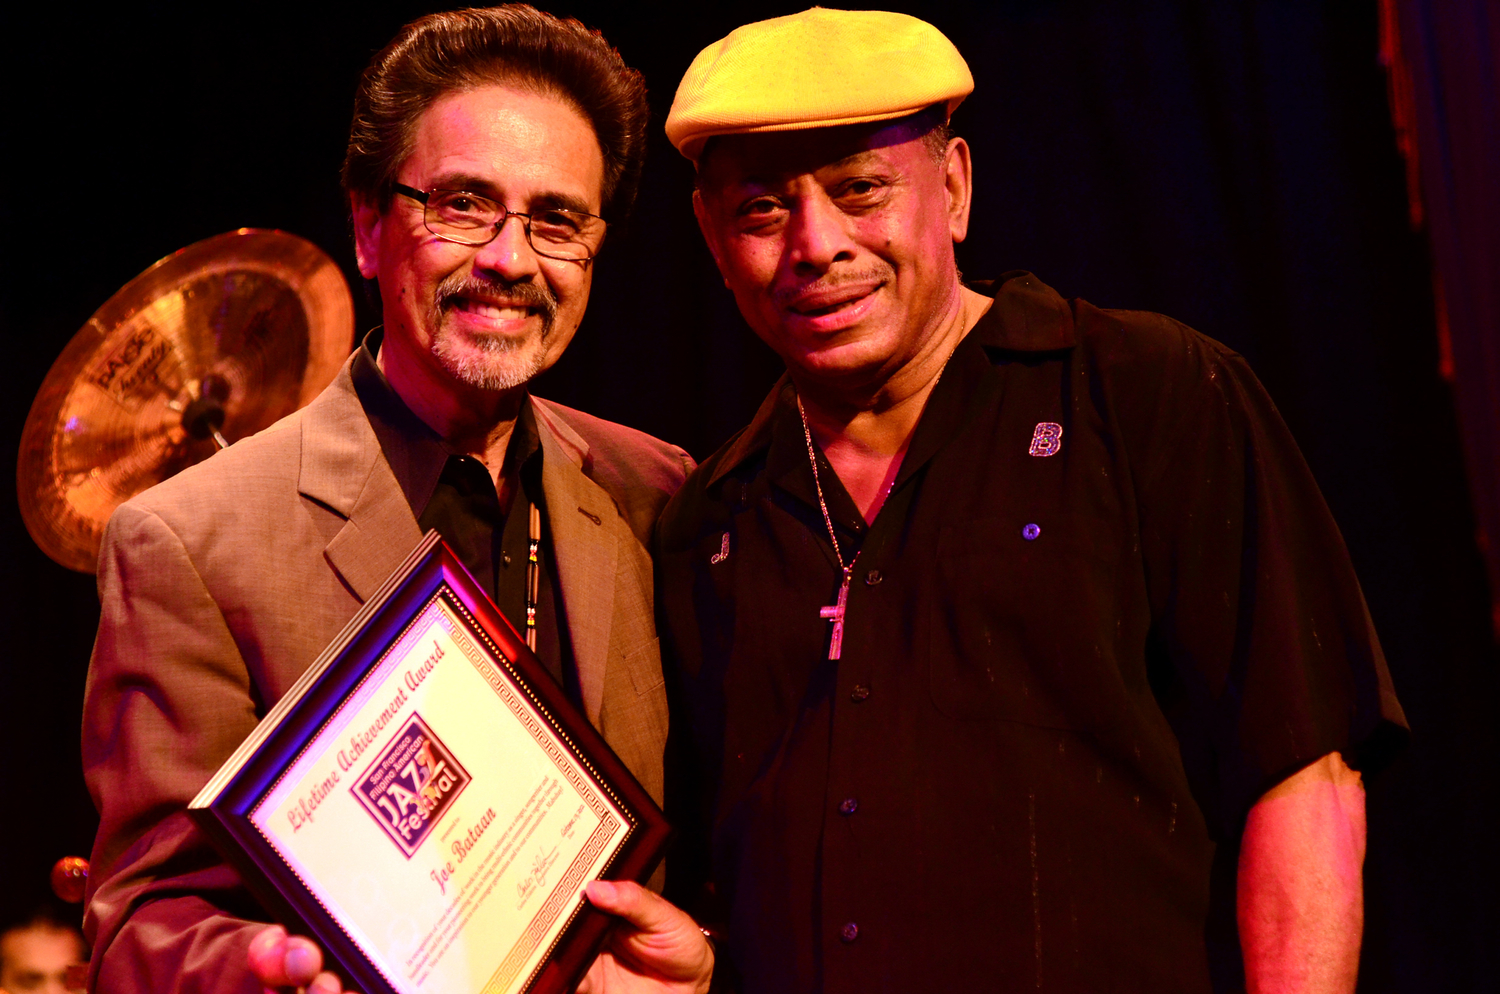 Joe Bataan (right) being honored with the San Francisco Filipino American Jazz Festival Lifetime Achievement Award by fellow Fil-Am jazz artist Carlos Zialcita at Yoshi's Oakland, Oct. 13, 2012.  (Photo by Henry Cheung)